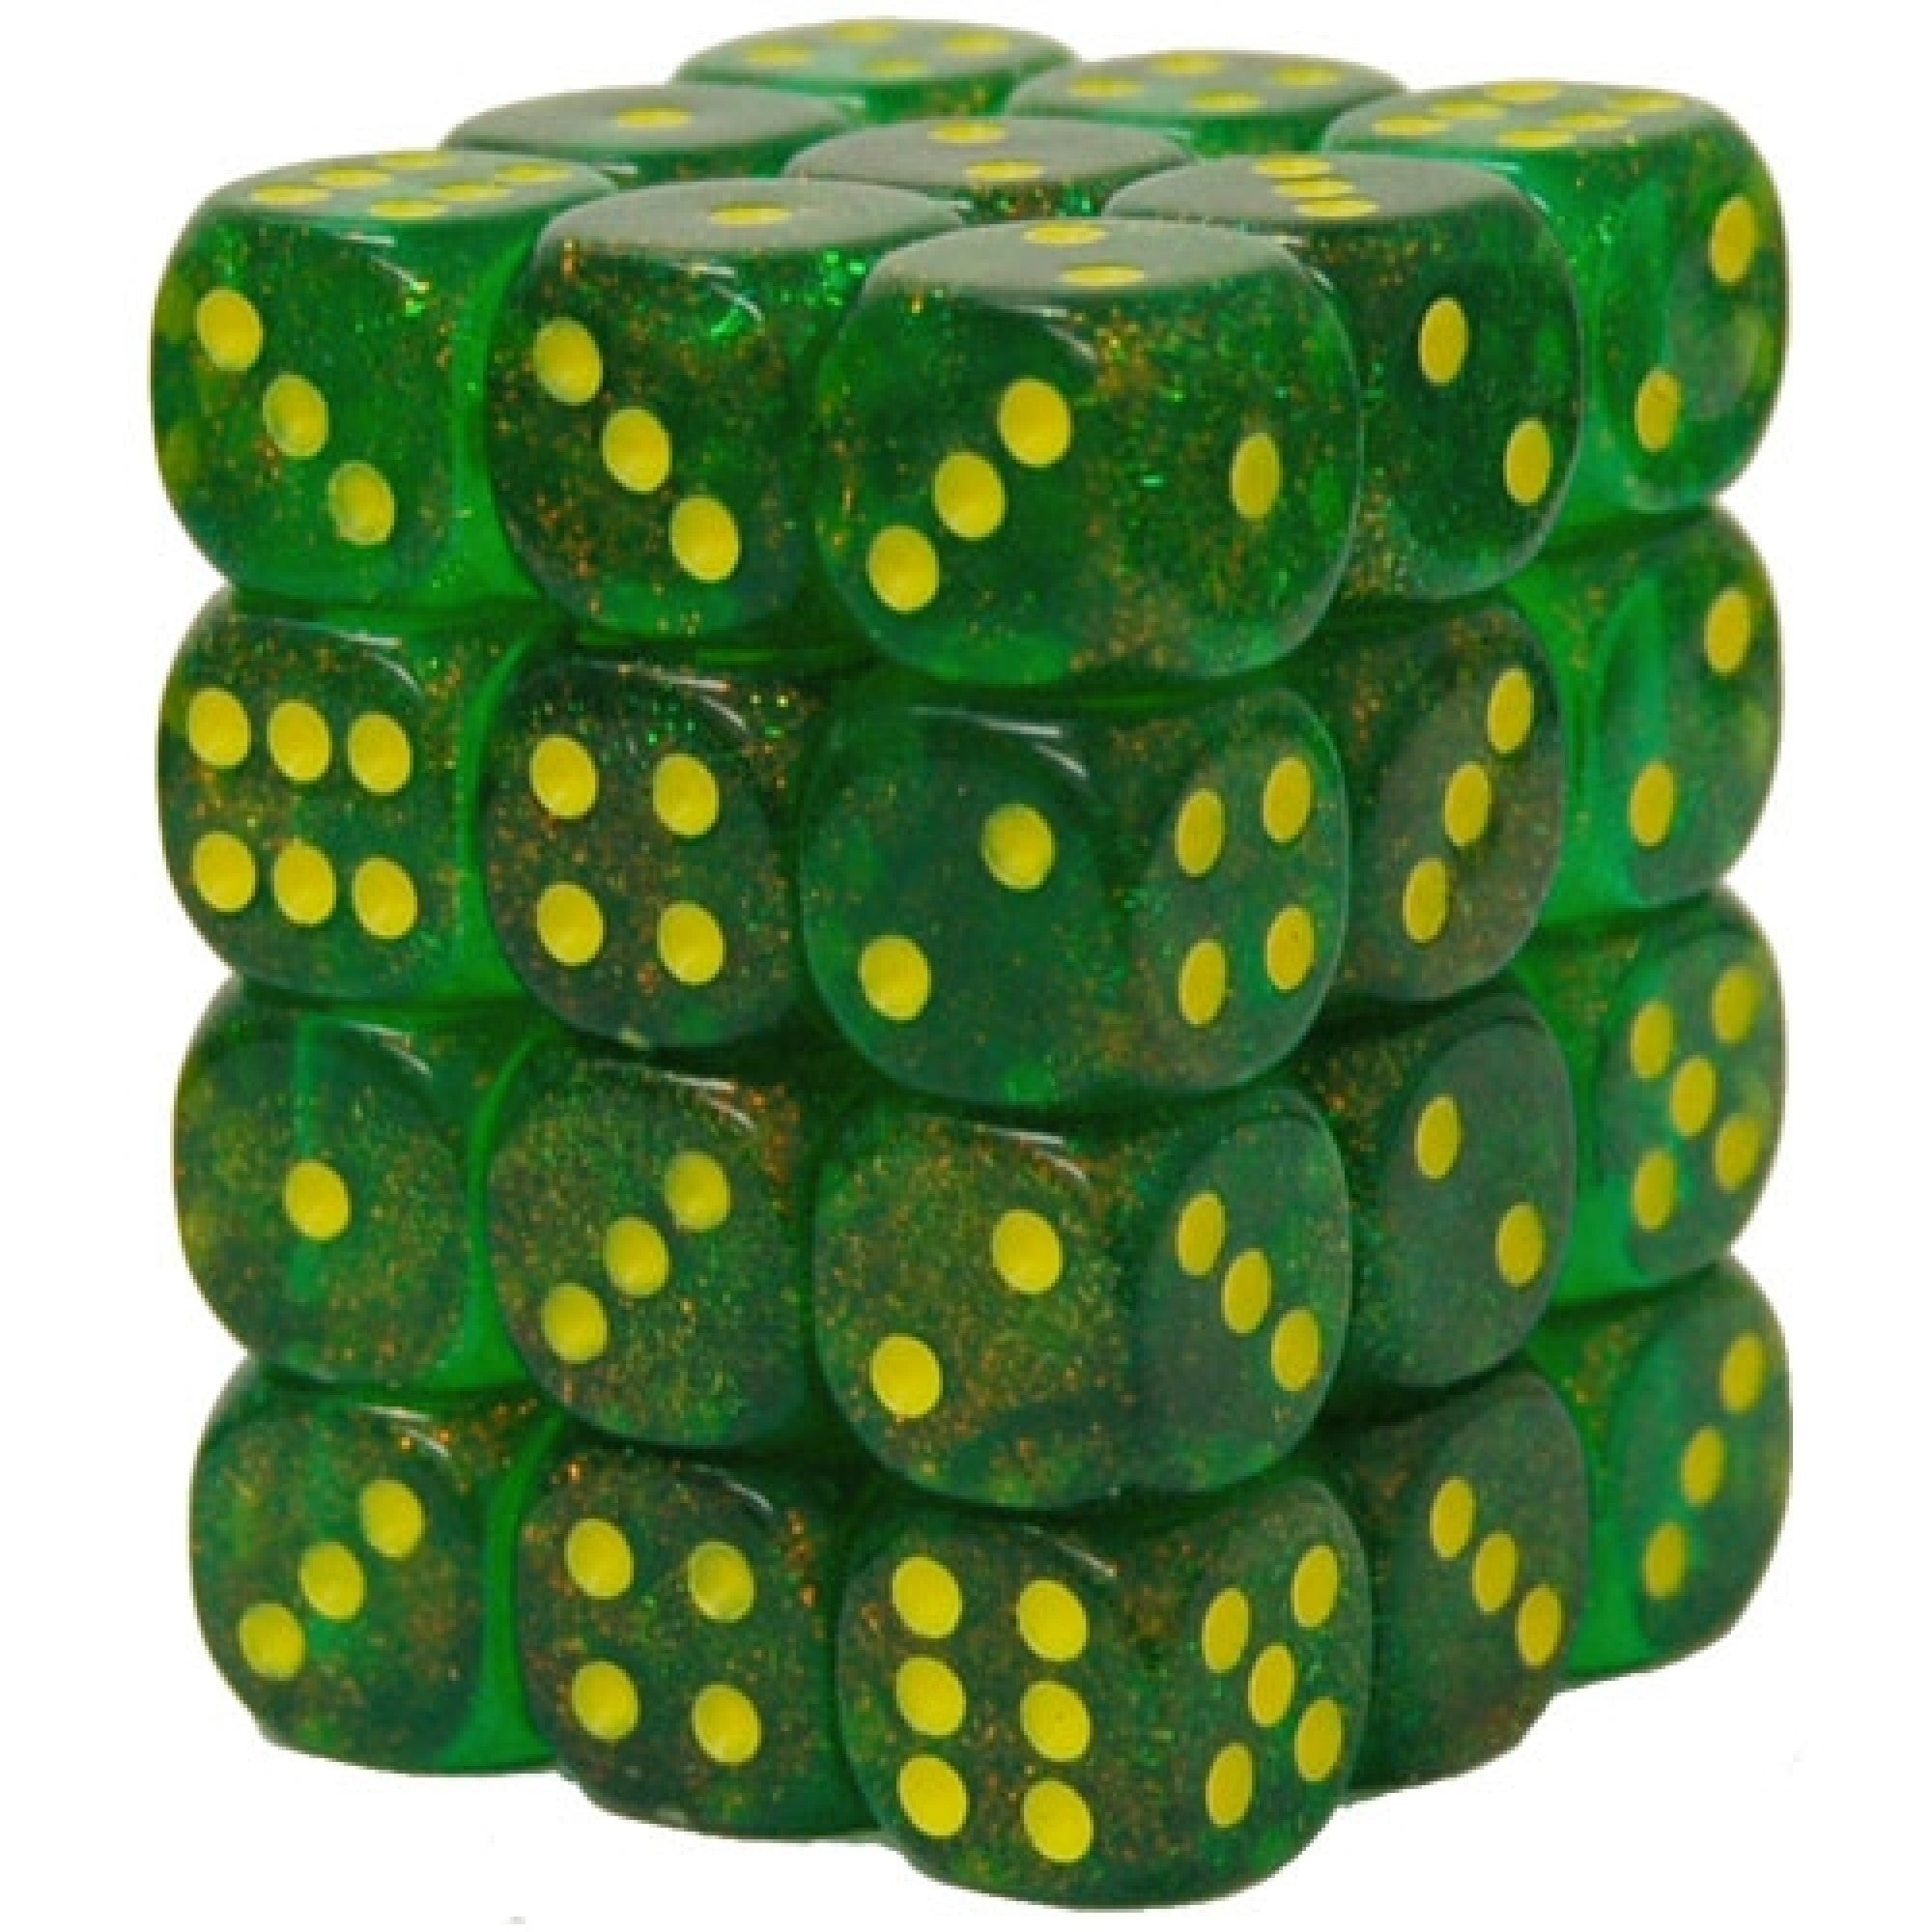 36 Maple Green w/Yellow Borealis 12mm D6 Dice Block - CHX27965 | North of Exile Games